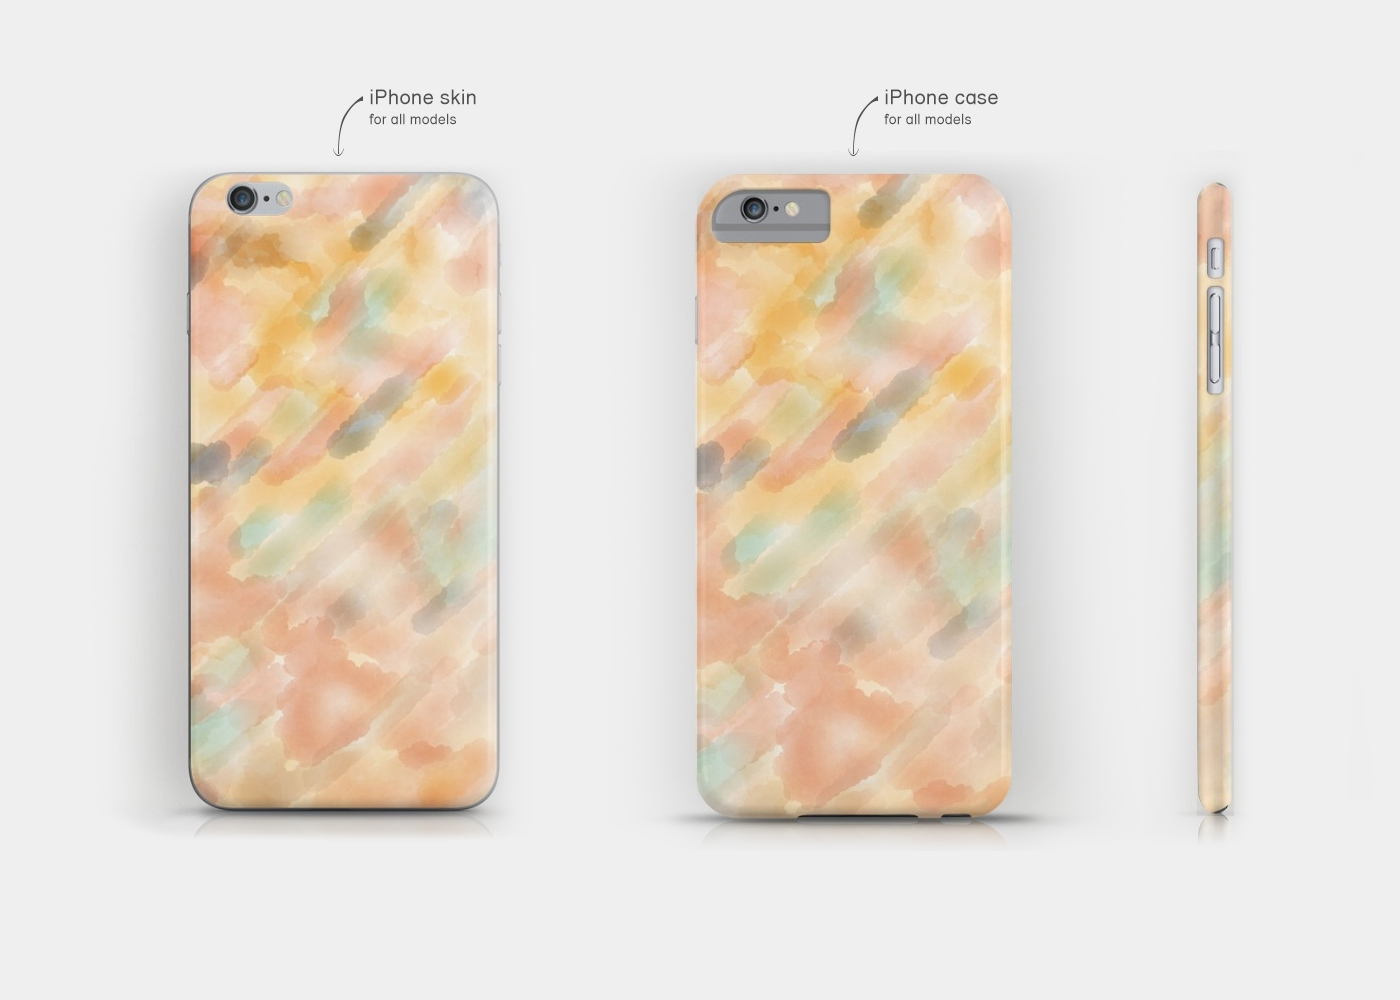 Skin and case for iPhone